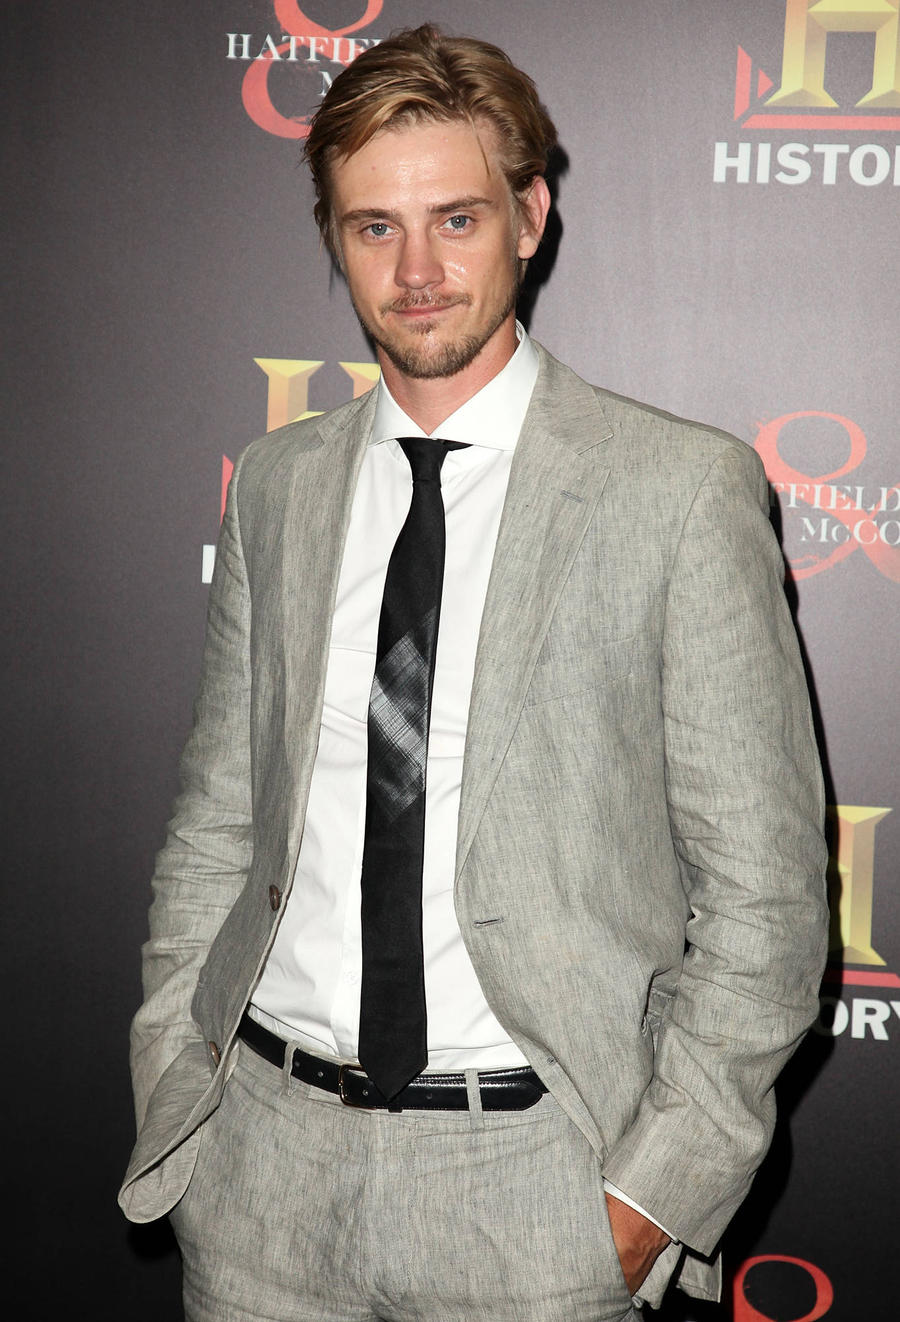 Boyd Holbrook In Talks For Predator Reboot